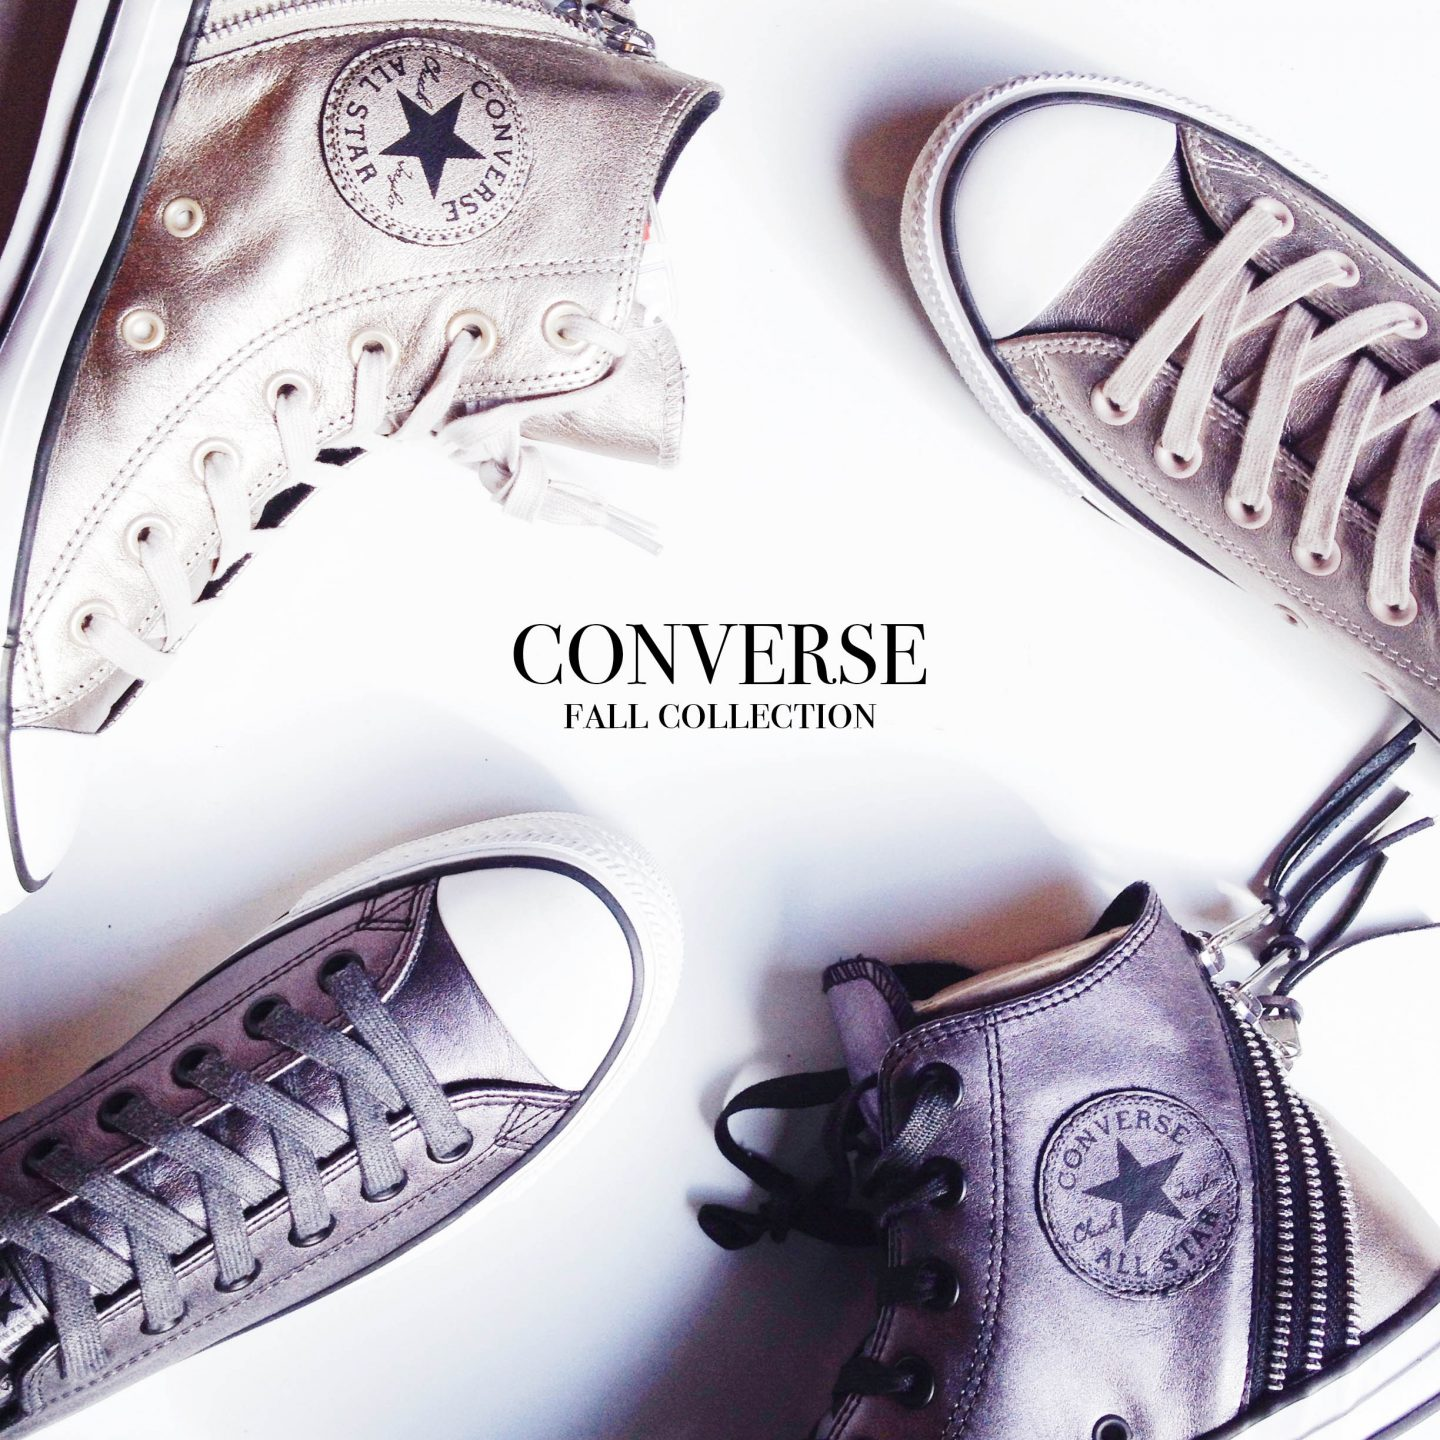 Fall Fashion Trends Alert: The Fall Converse Collection